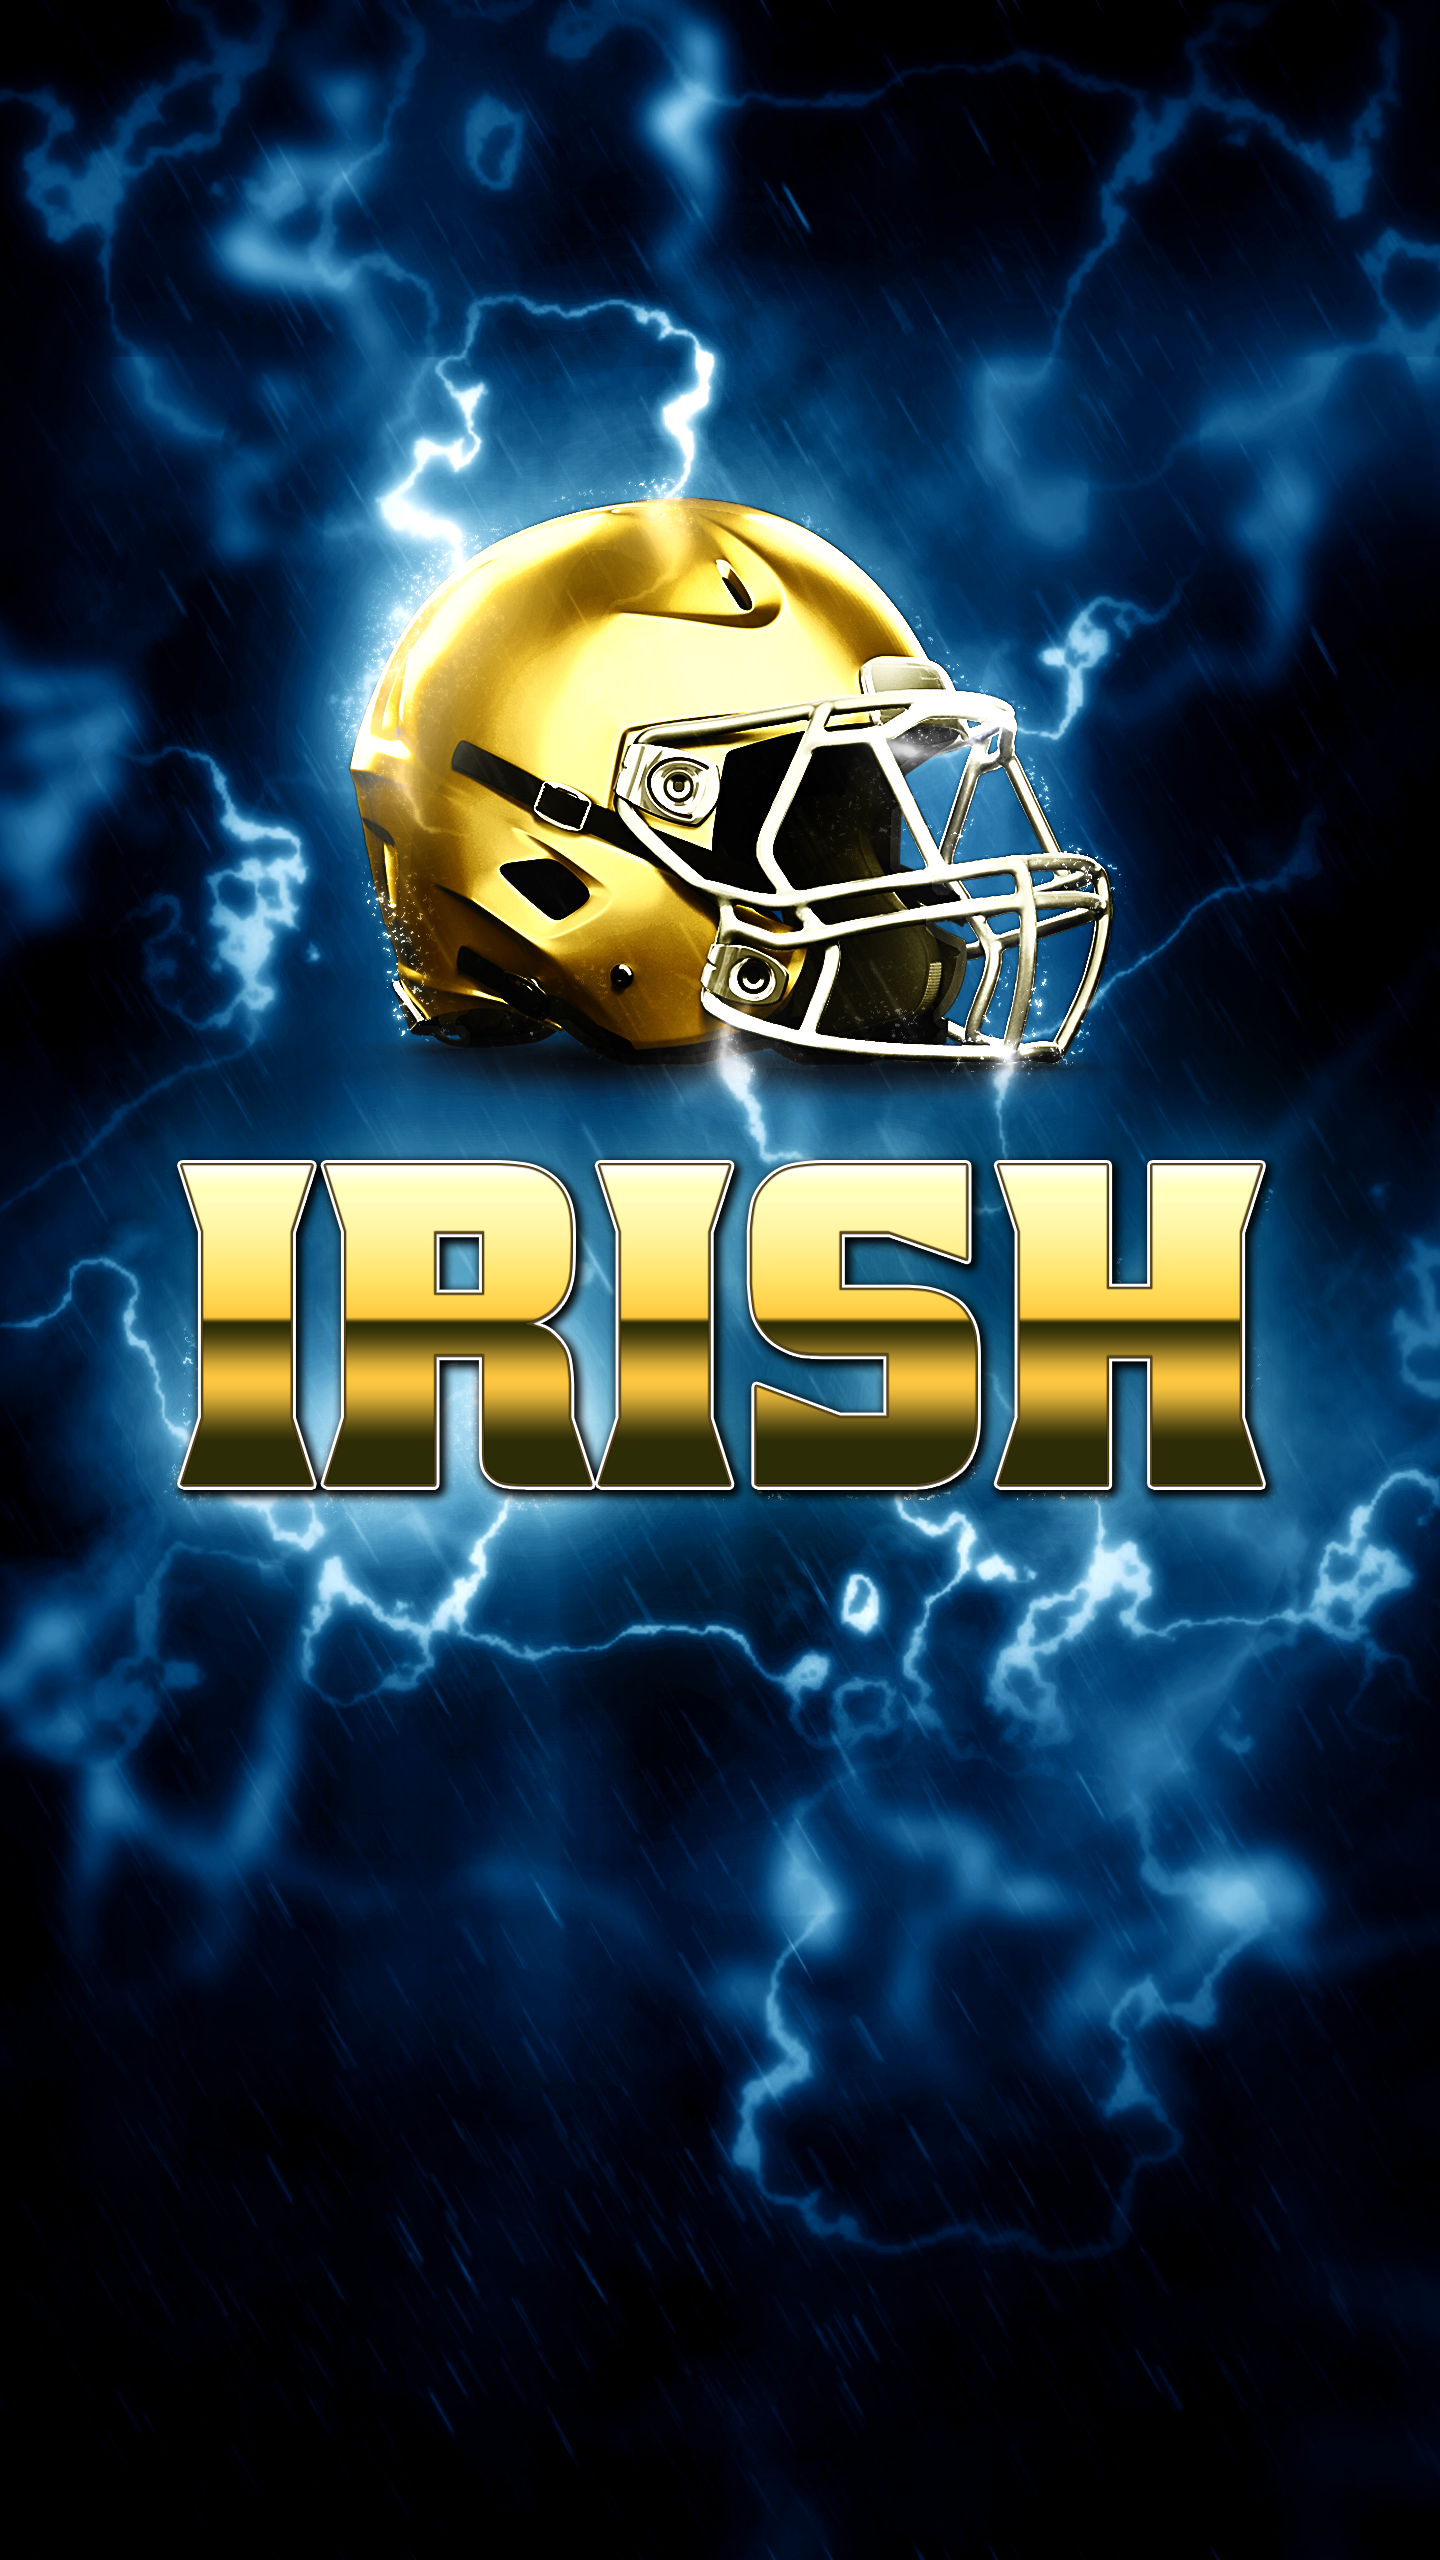 Notre Dame iPhone/Android Wallpaper for your Smart Phone